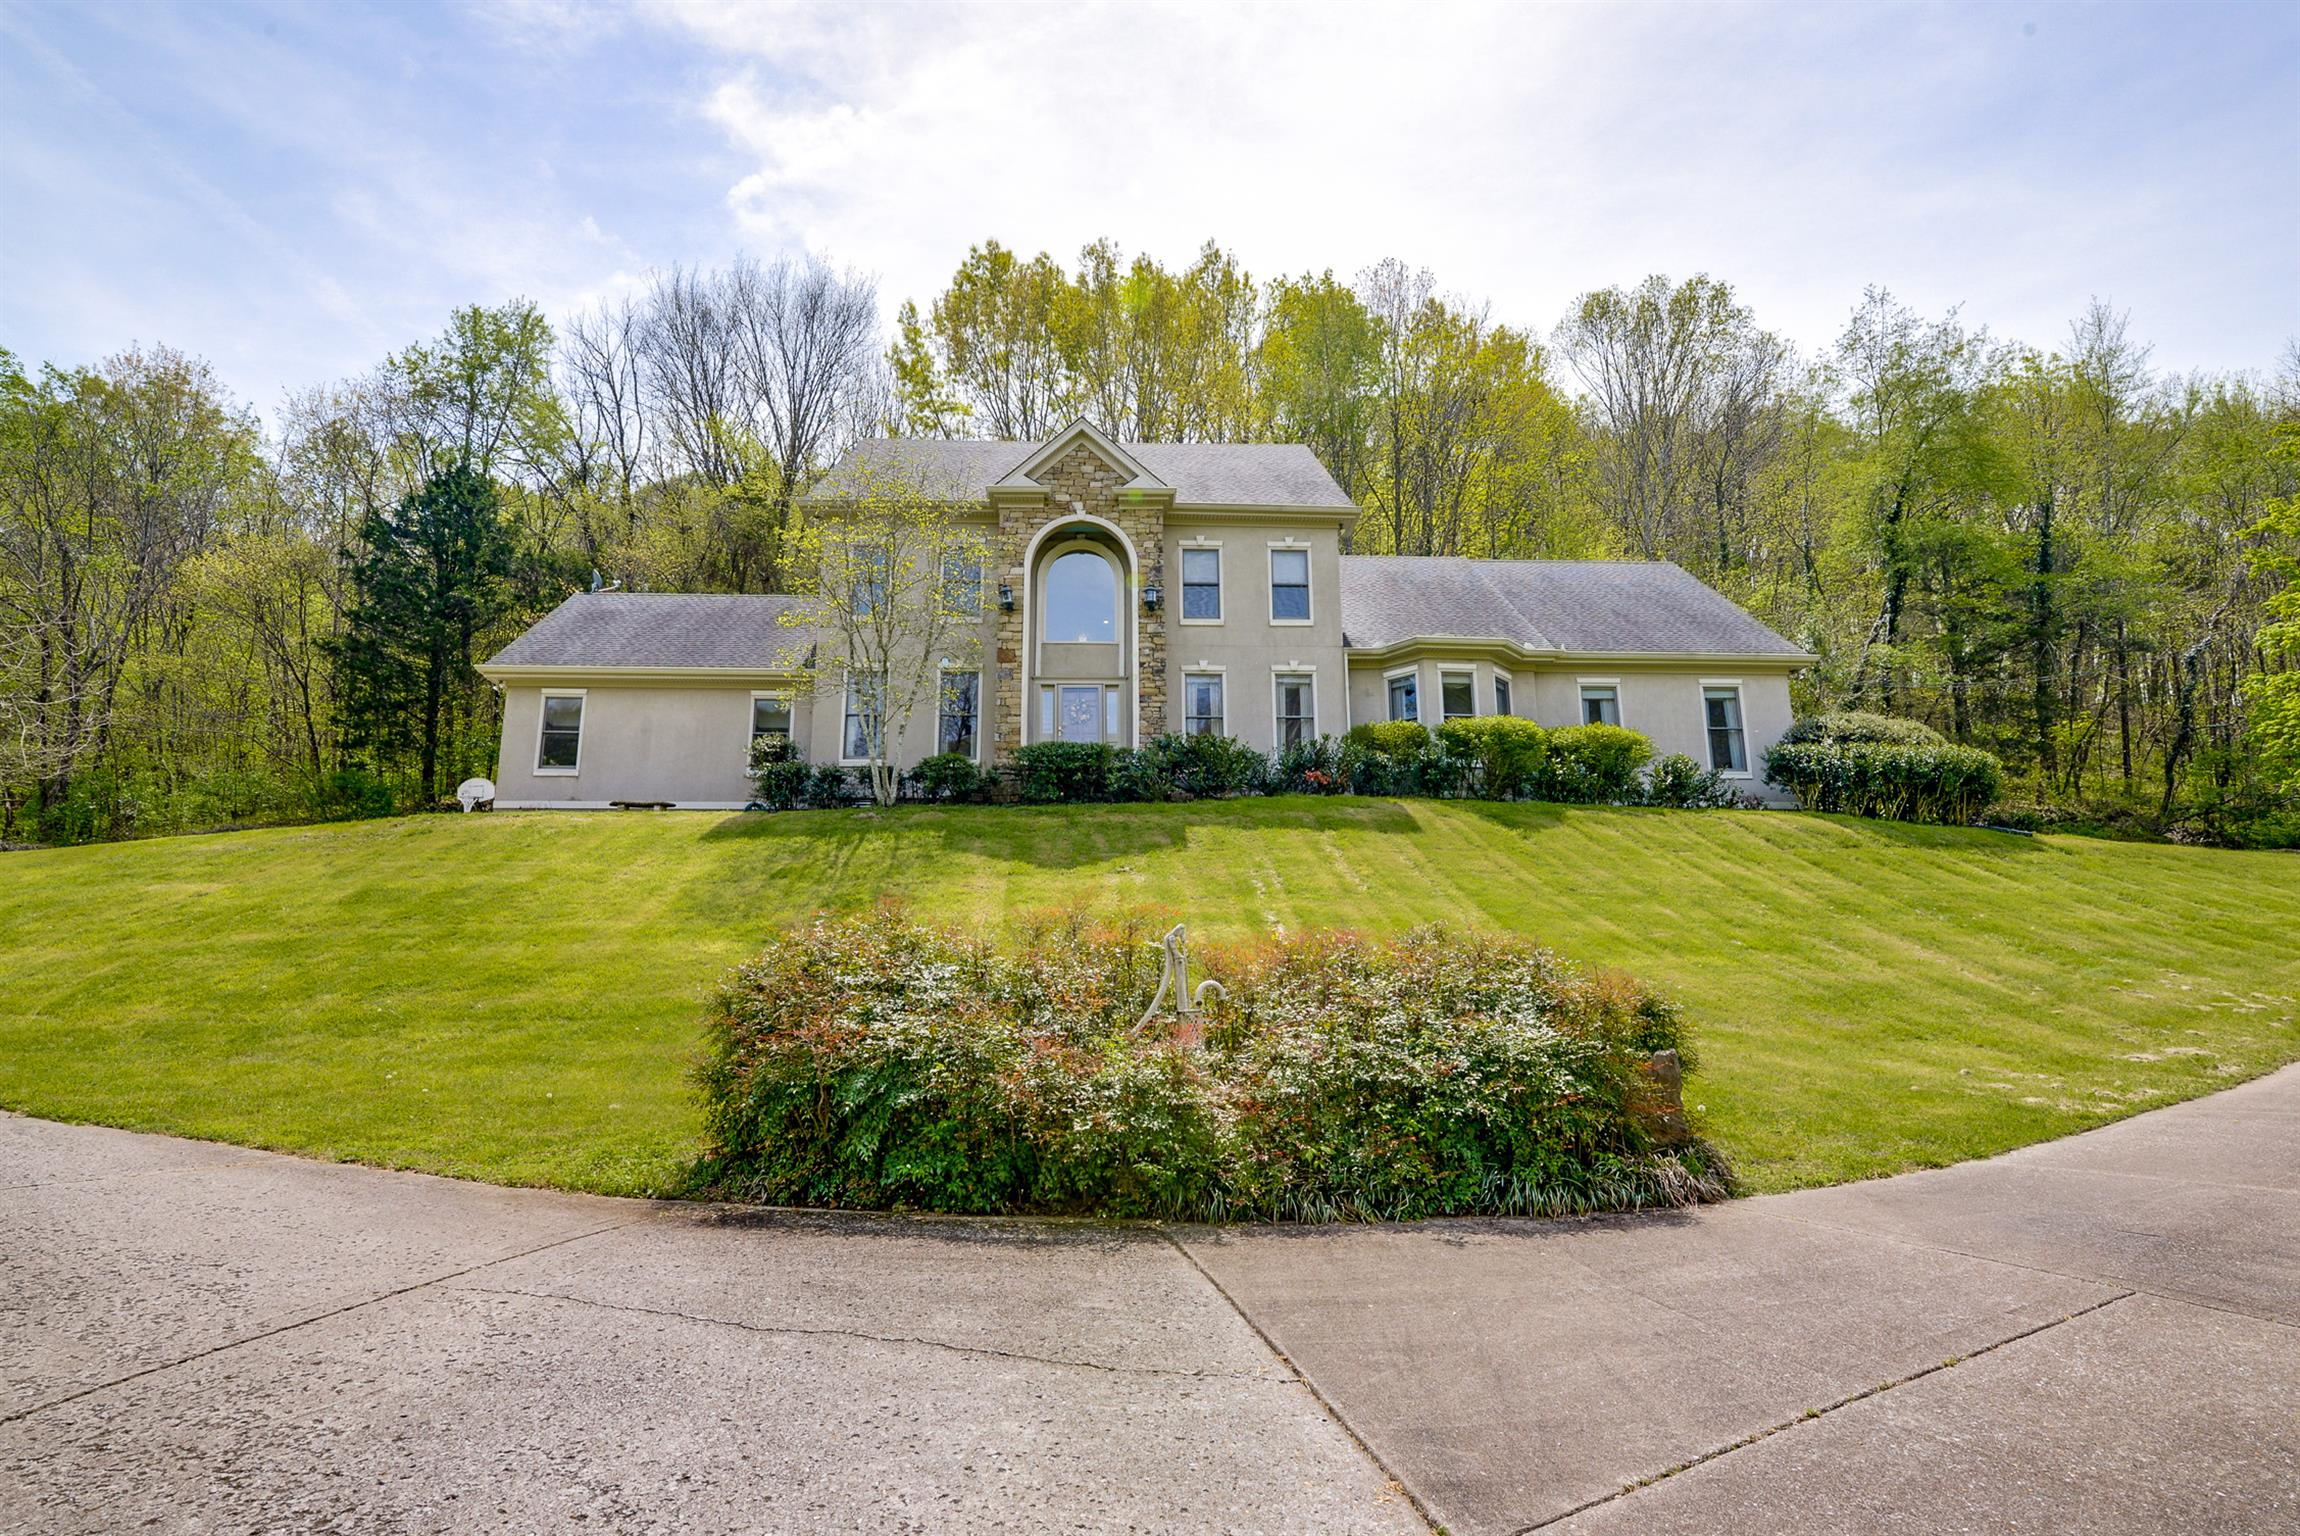 980 Hitt Ln, Goodlettsville, TN 37072 - Goodlettsville, TN real estate listing